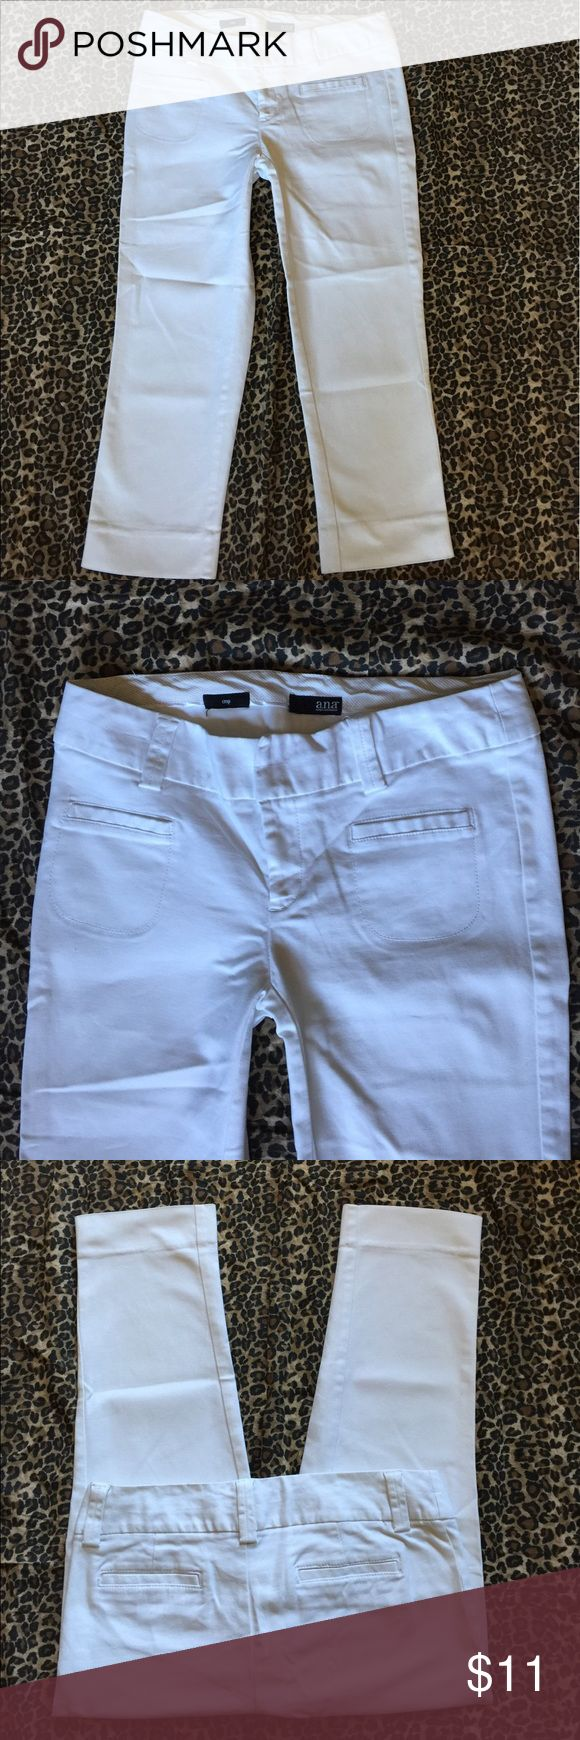 Women's a.n.a white cropped dressy capris sz. 8 🌸 Very nice!! Washed & worn just a couple times! Super comfy & stylish! Made by a.n.a these are a size 8 ~ a dressy like cropped Capri with cute pockets & nice slender & comfy feel to them! Some stretch these are made out of 98%cotton & 2%spandex. Waist measured across, laying flat is approx. 16.5' ~rise is approx. 8' ~& inseam is approx. 23' These are perfect for that pretty summer top & sandals, slip ons, flip flops or heels! Any questions…